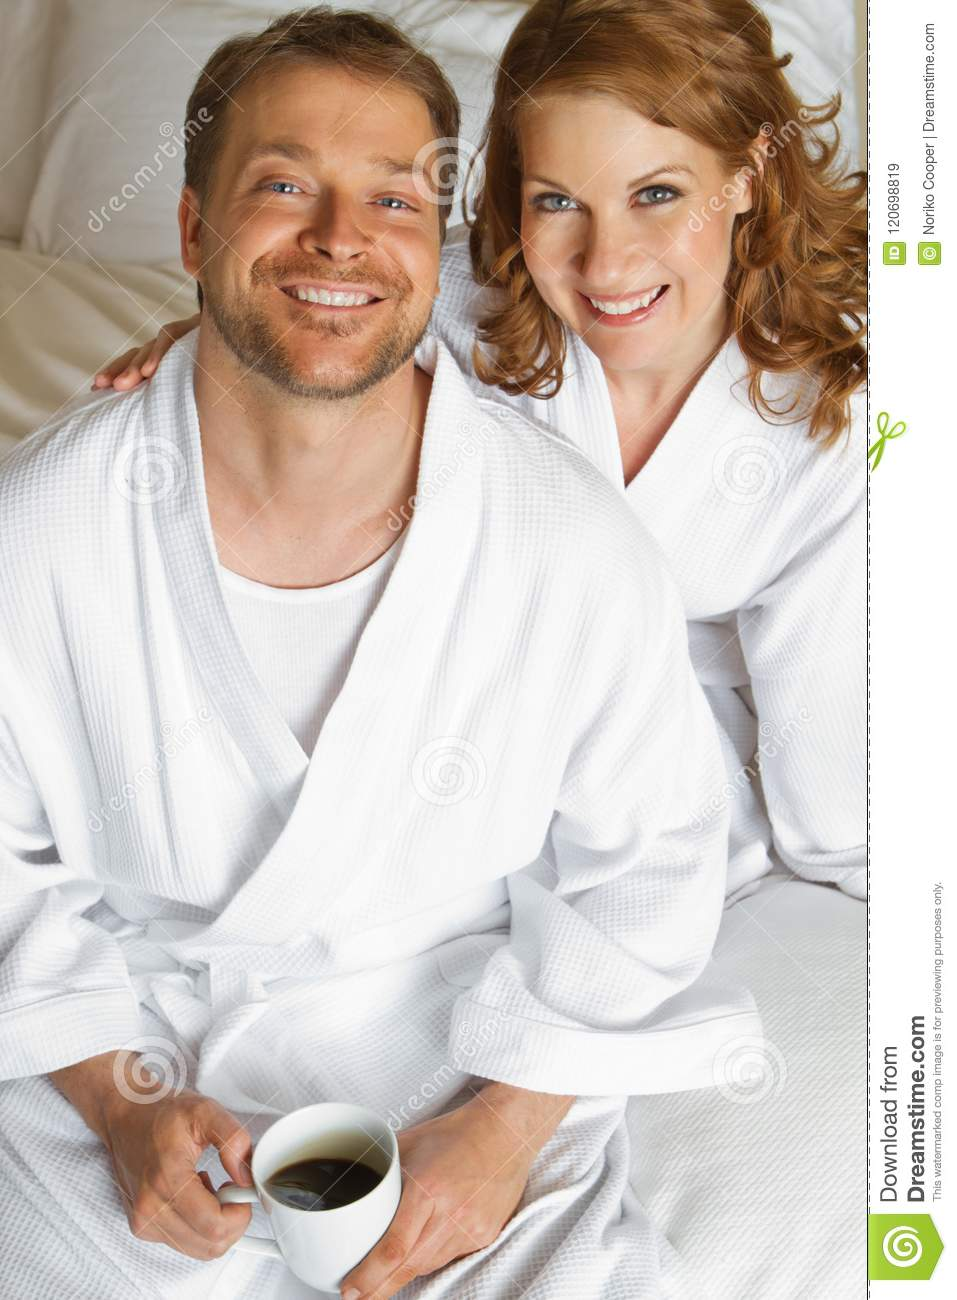 Cute Couple In Bath Robes Stock Image Image Of Lifestyles 120698819